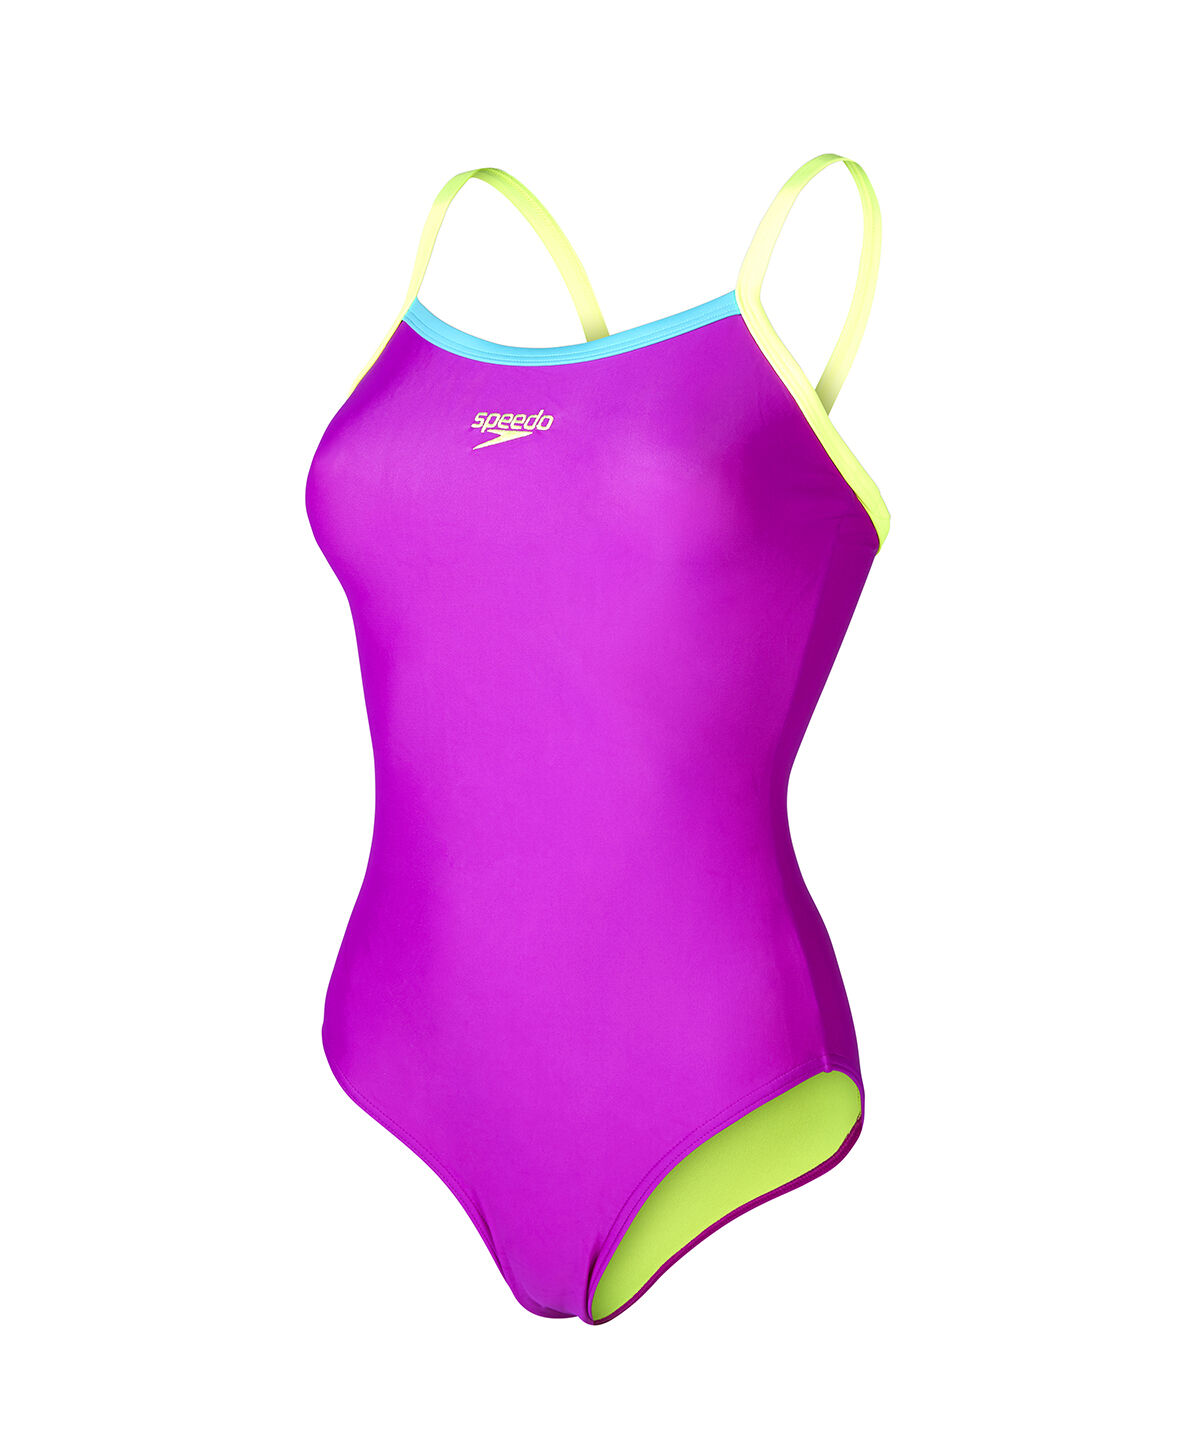 Women's Thinstrap Swimsuit